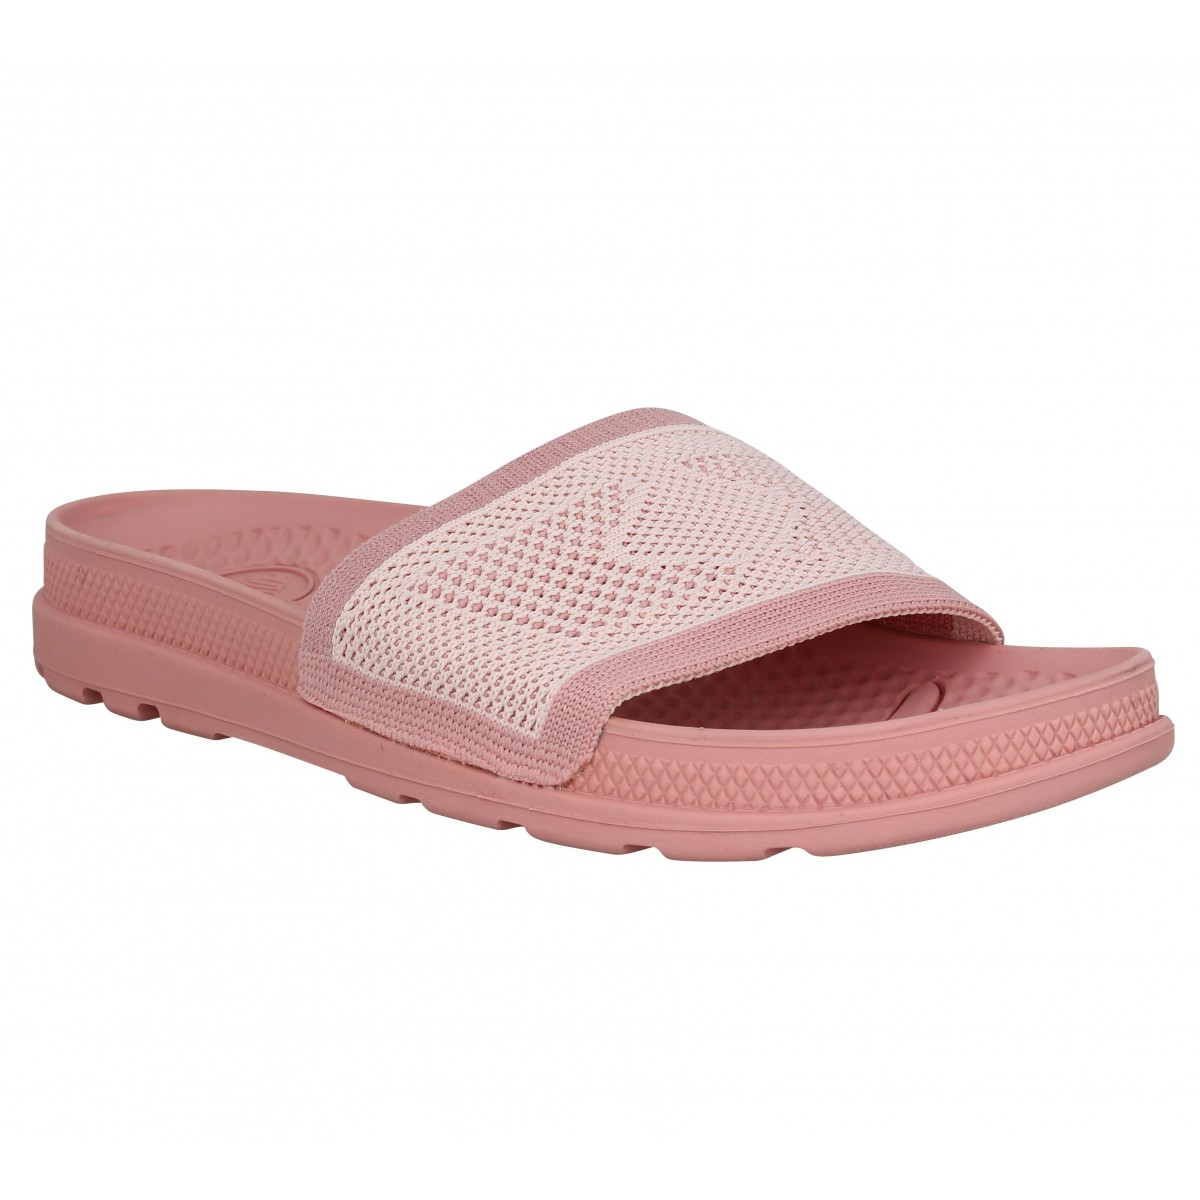 Chaussures Palladium Toile Fanny Pampa Solea Rose Femme qpqUCFrH